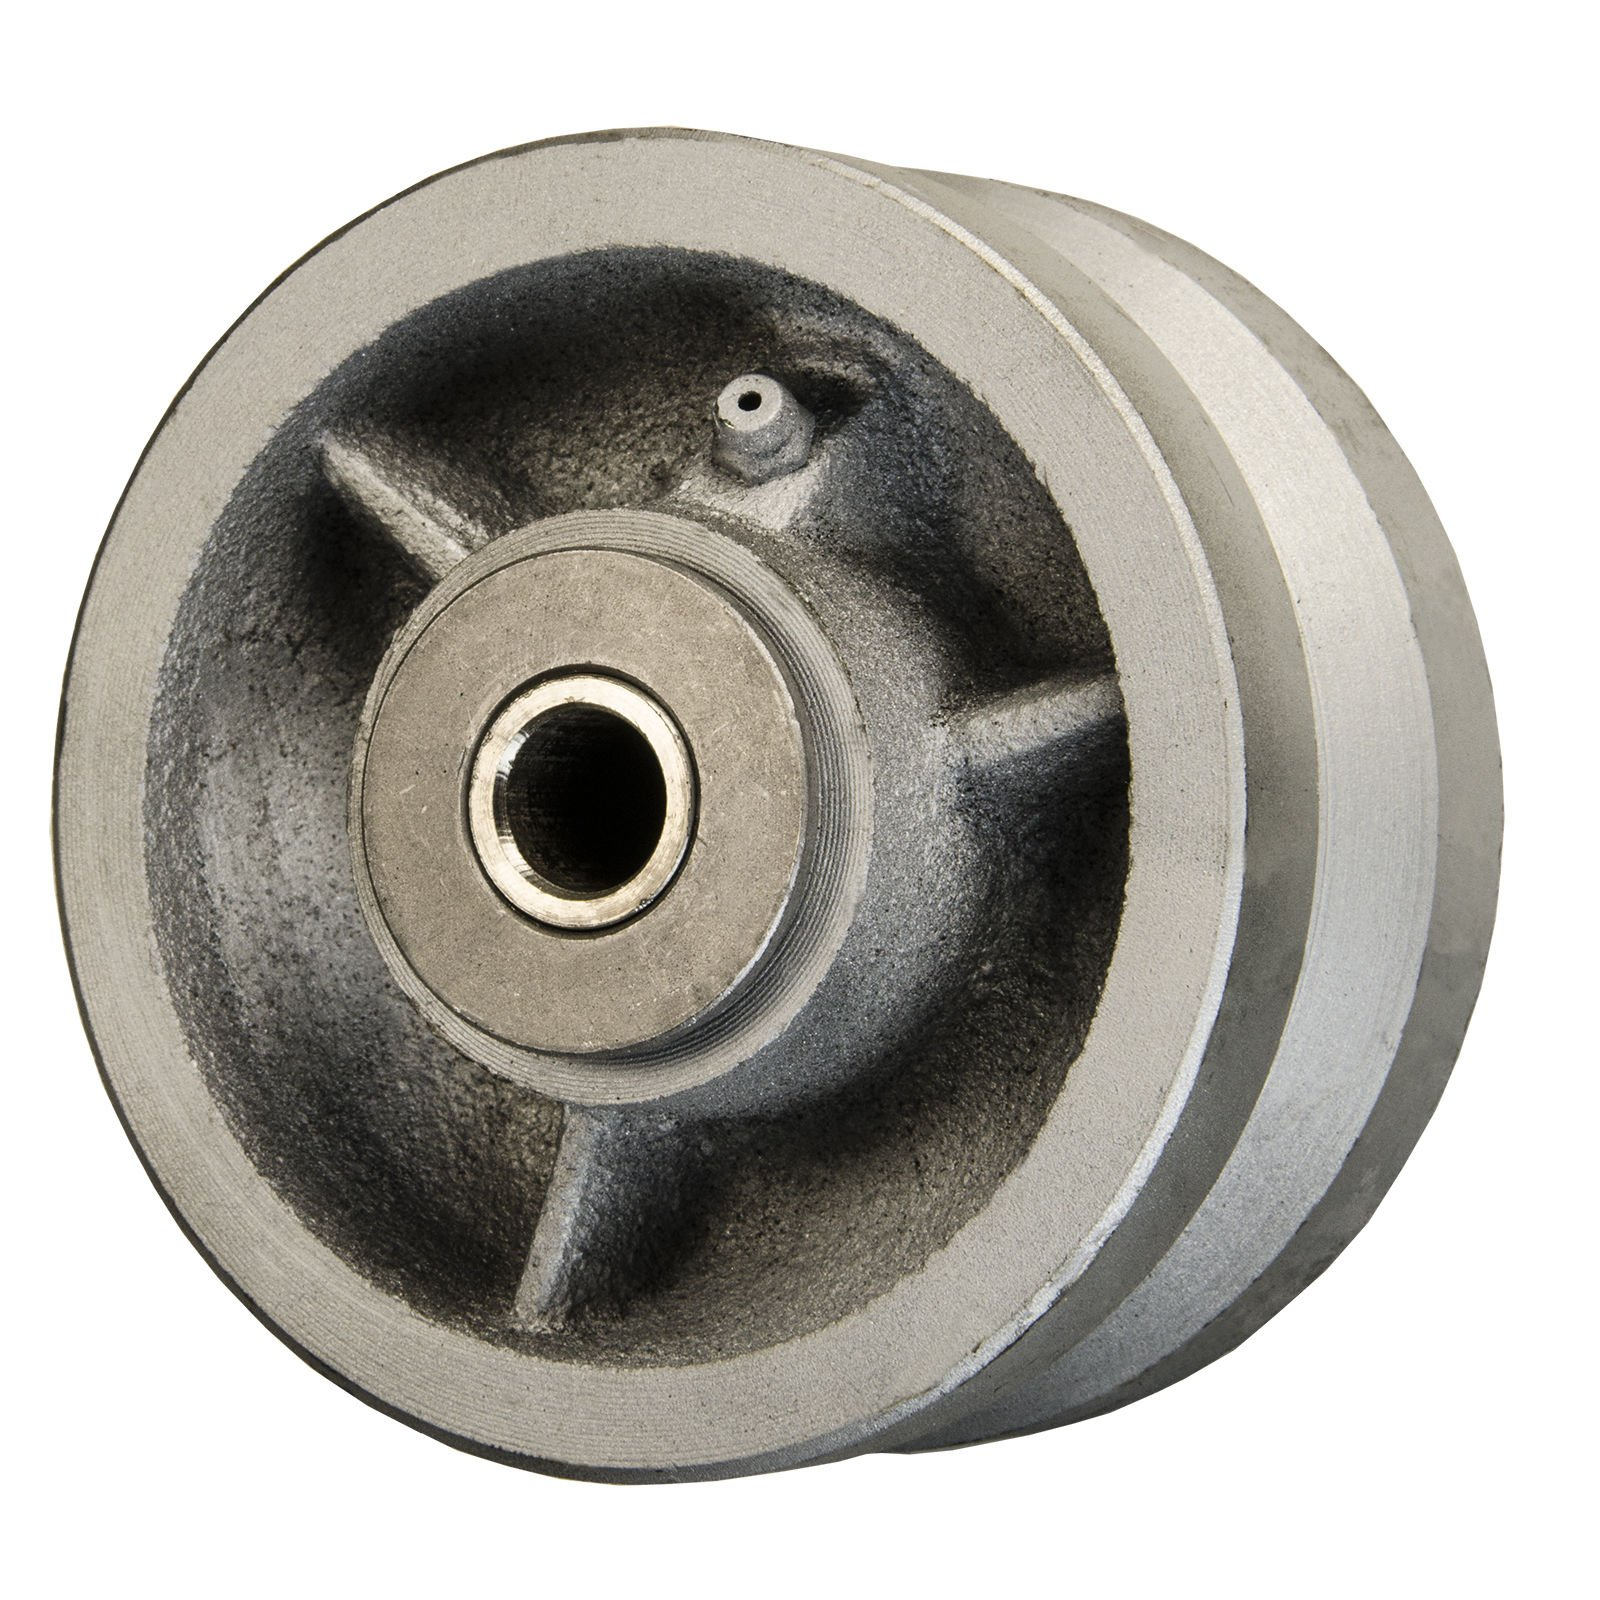 4'' x 2'' V Groove Wheel for Casters or Equipment Service Caster Brand